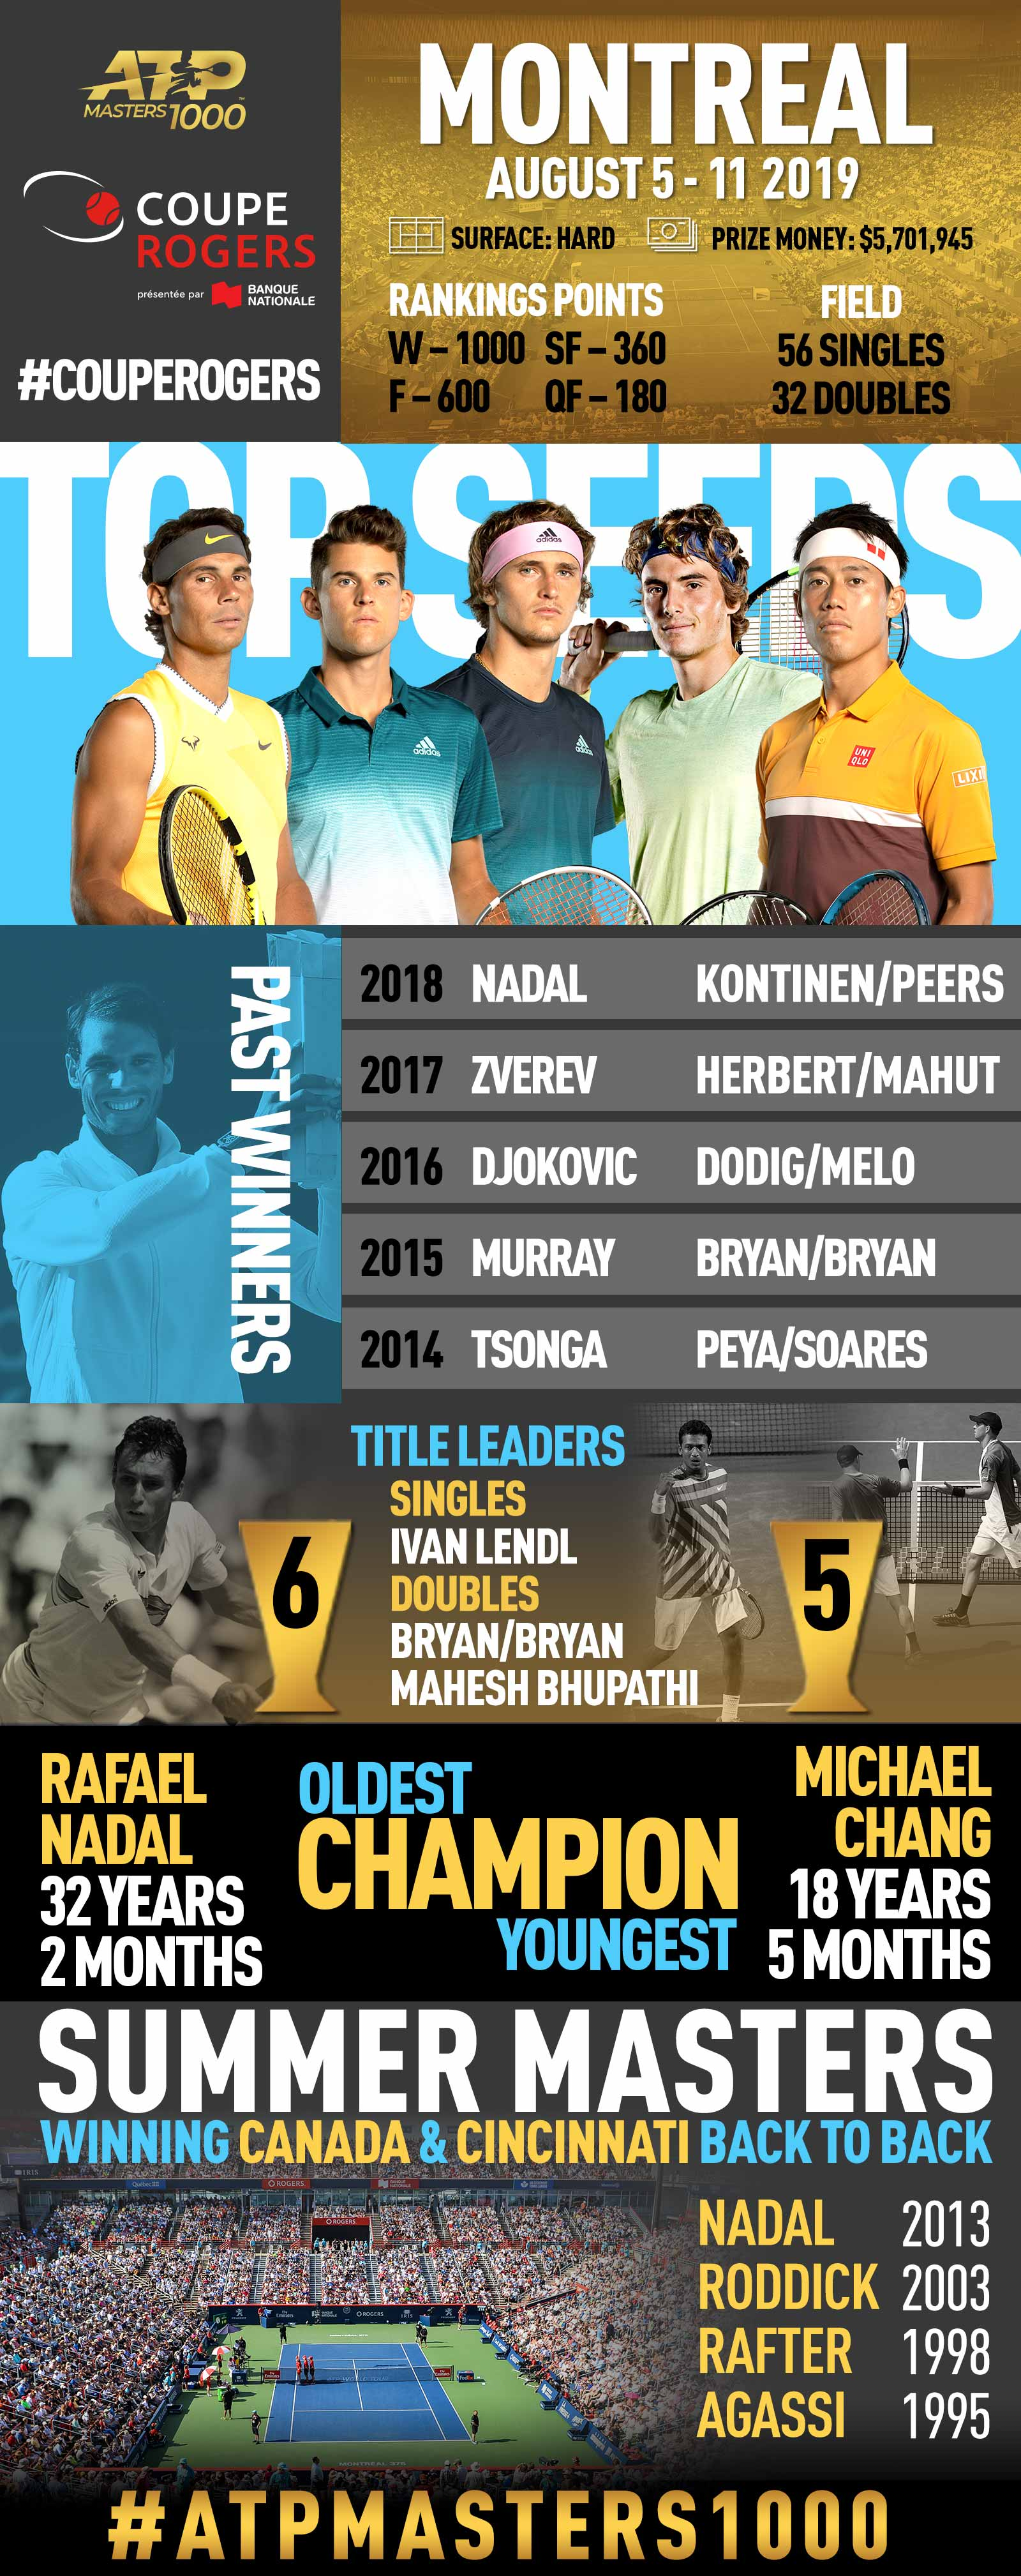 Facts & Figures from the Coupe Rogers, an ATP Masters 1000 tennis tournament in Montreal, Canada